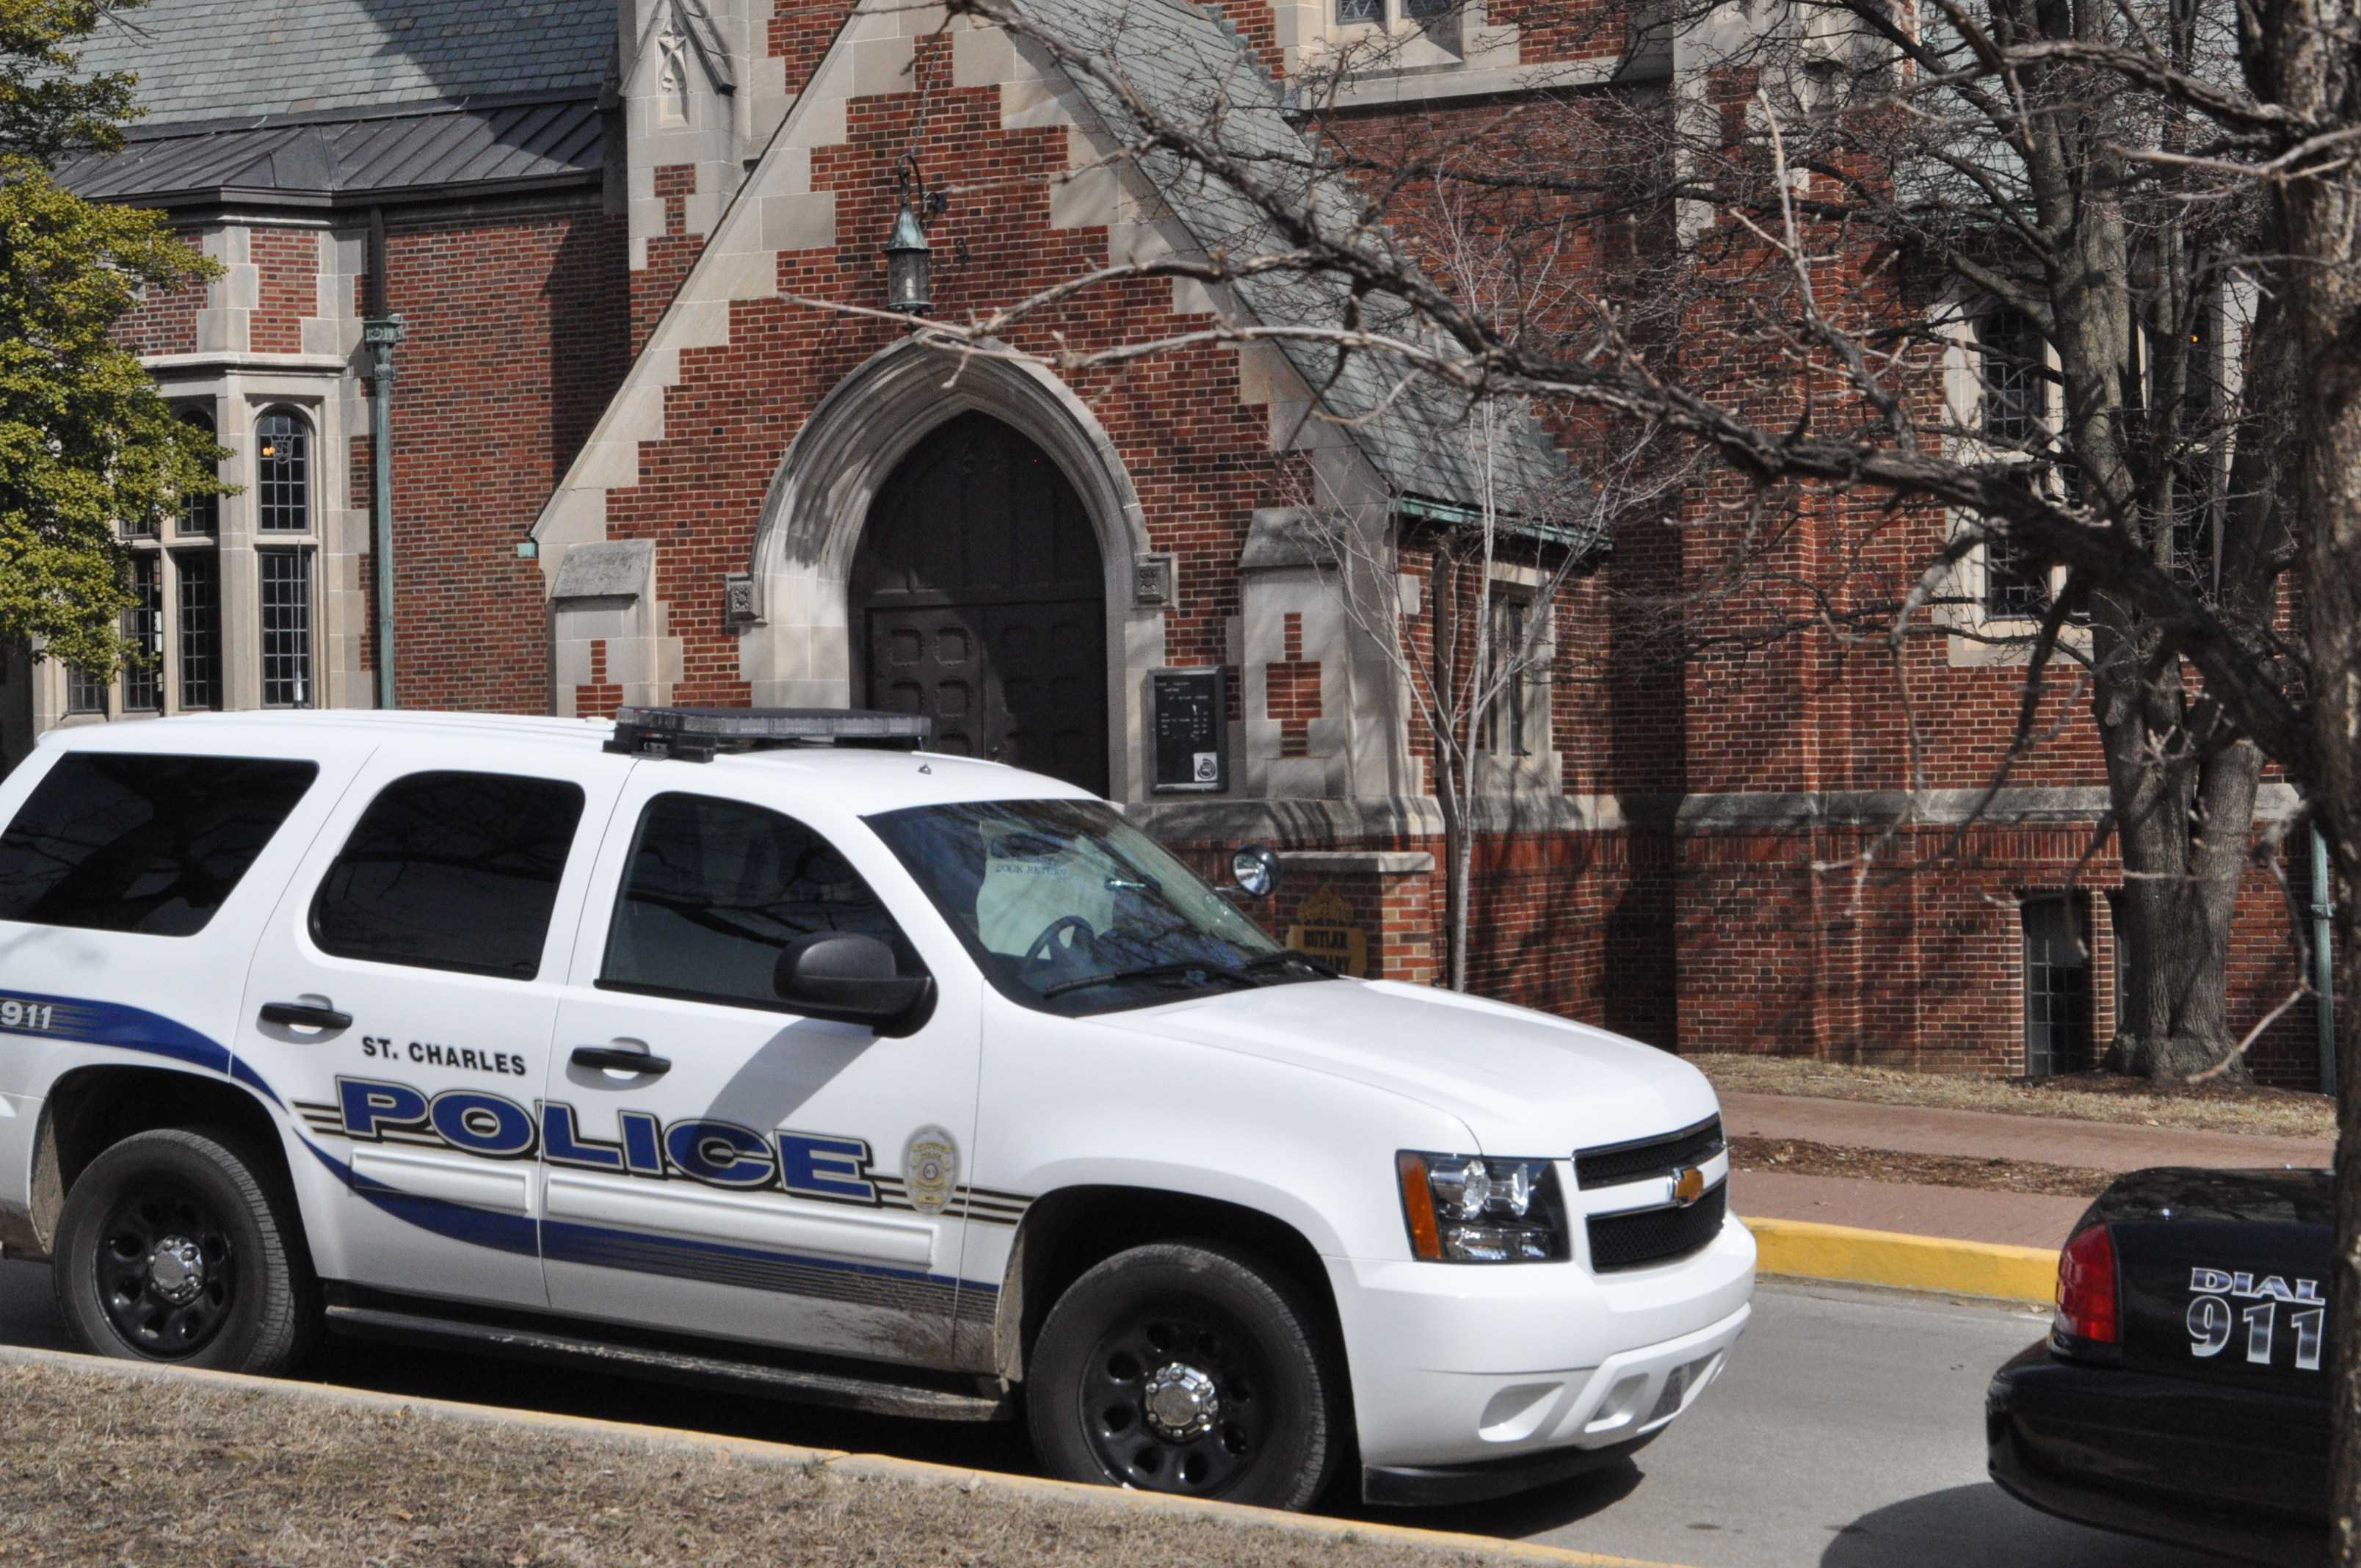 Police vehicle on campus